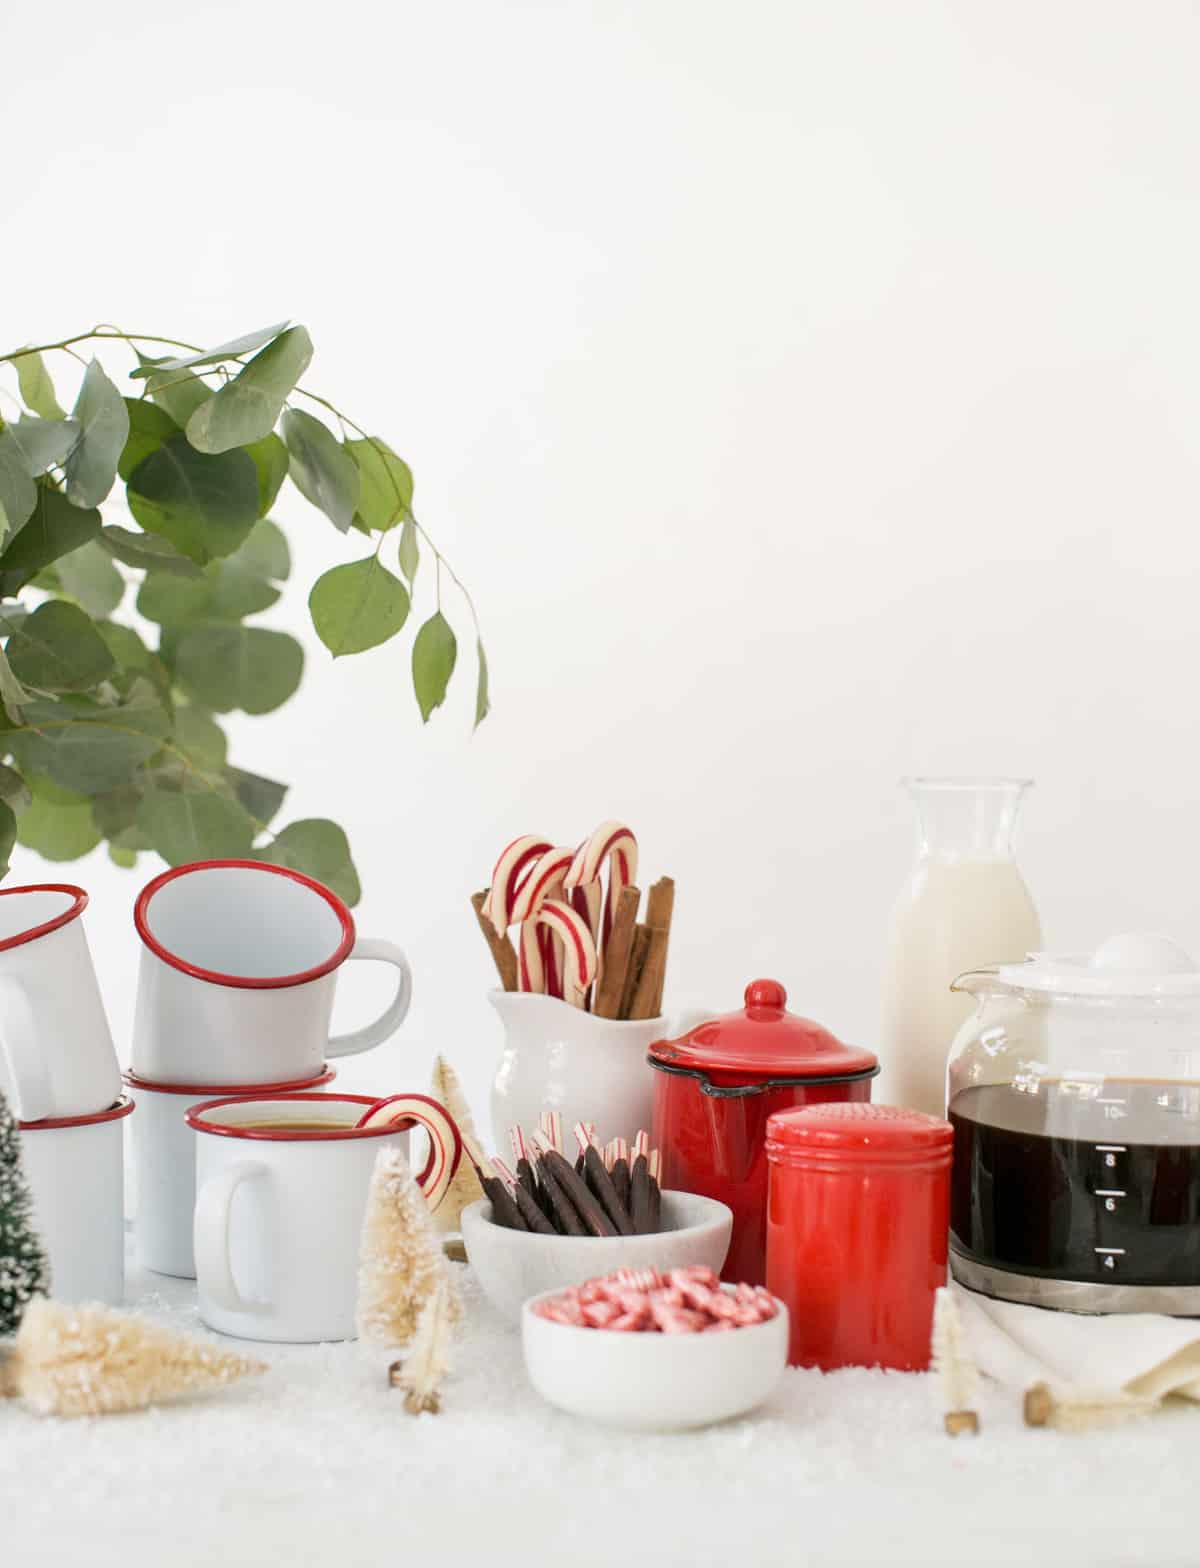 Winter coffee bar with red and white mugs, peppermint and brewed coffee.